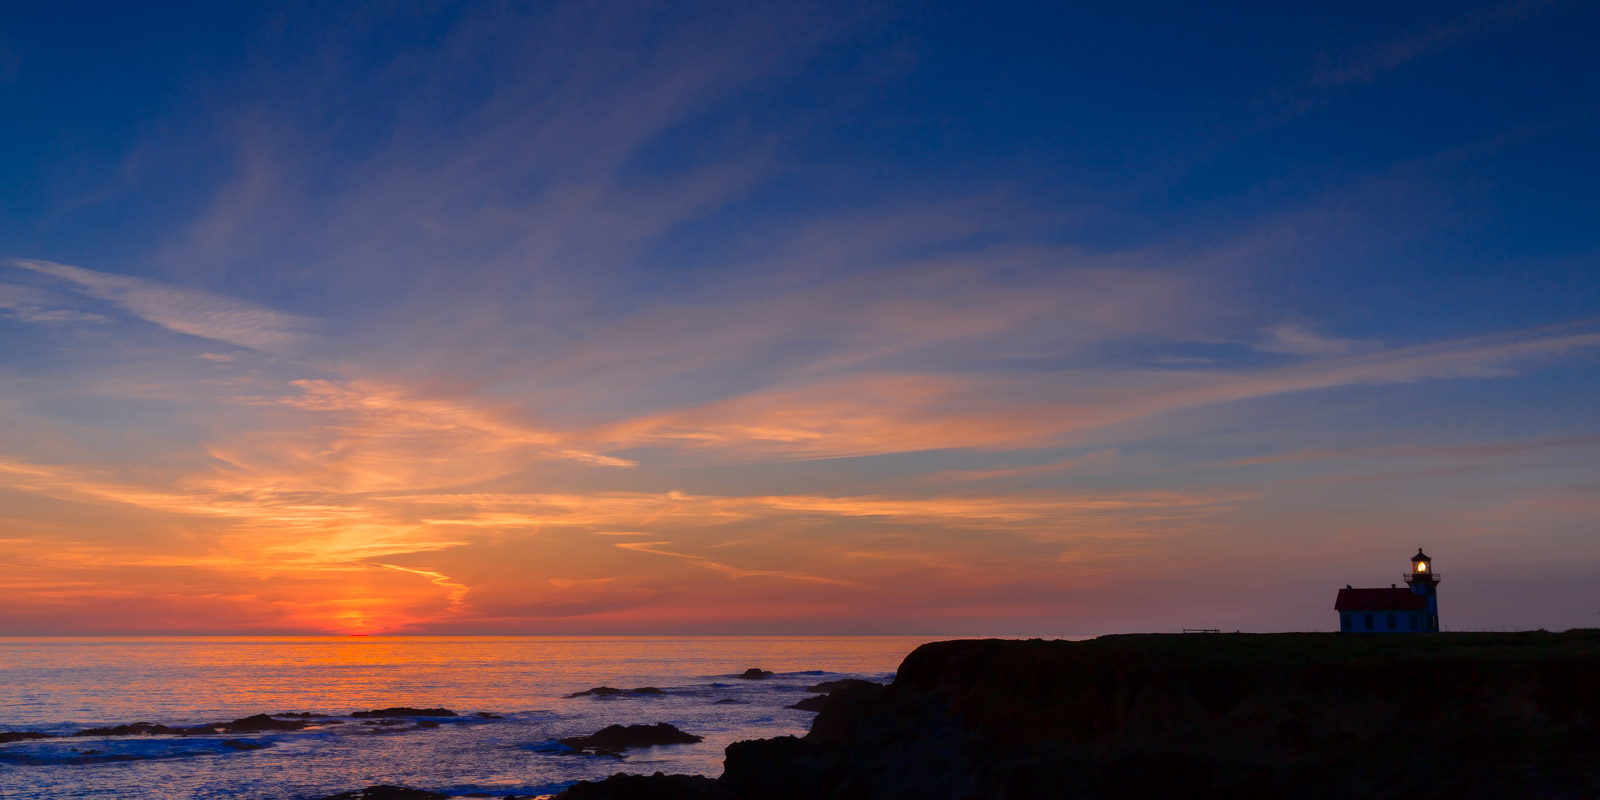 A Limited Edition, Fine Art photograph of a stunning sunset at the Cabrillo Lighthouse in Mendocino, California.  Available as...